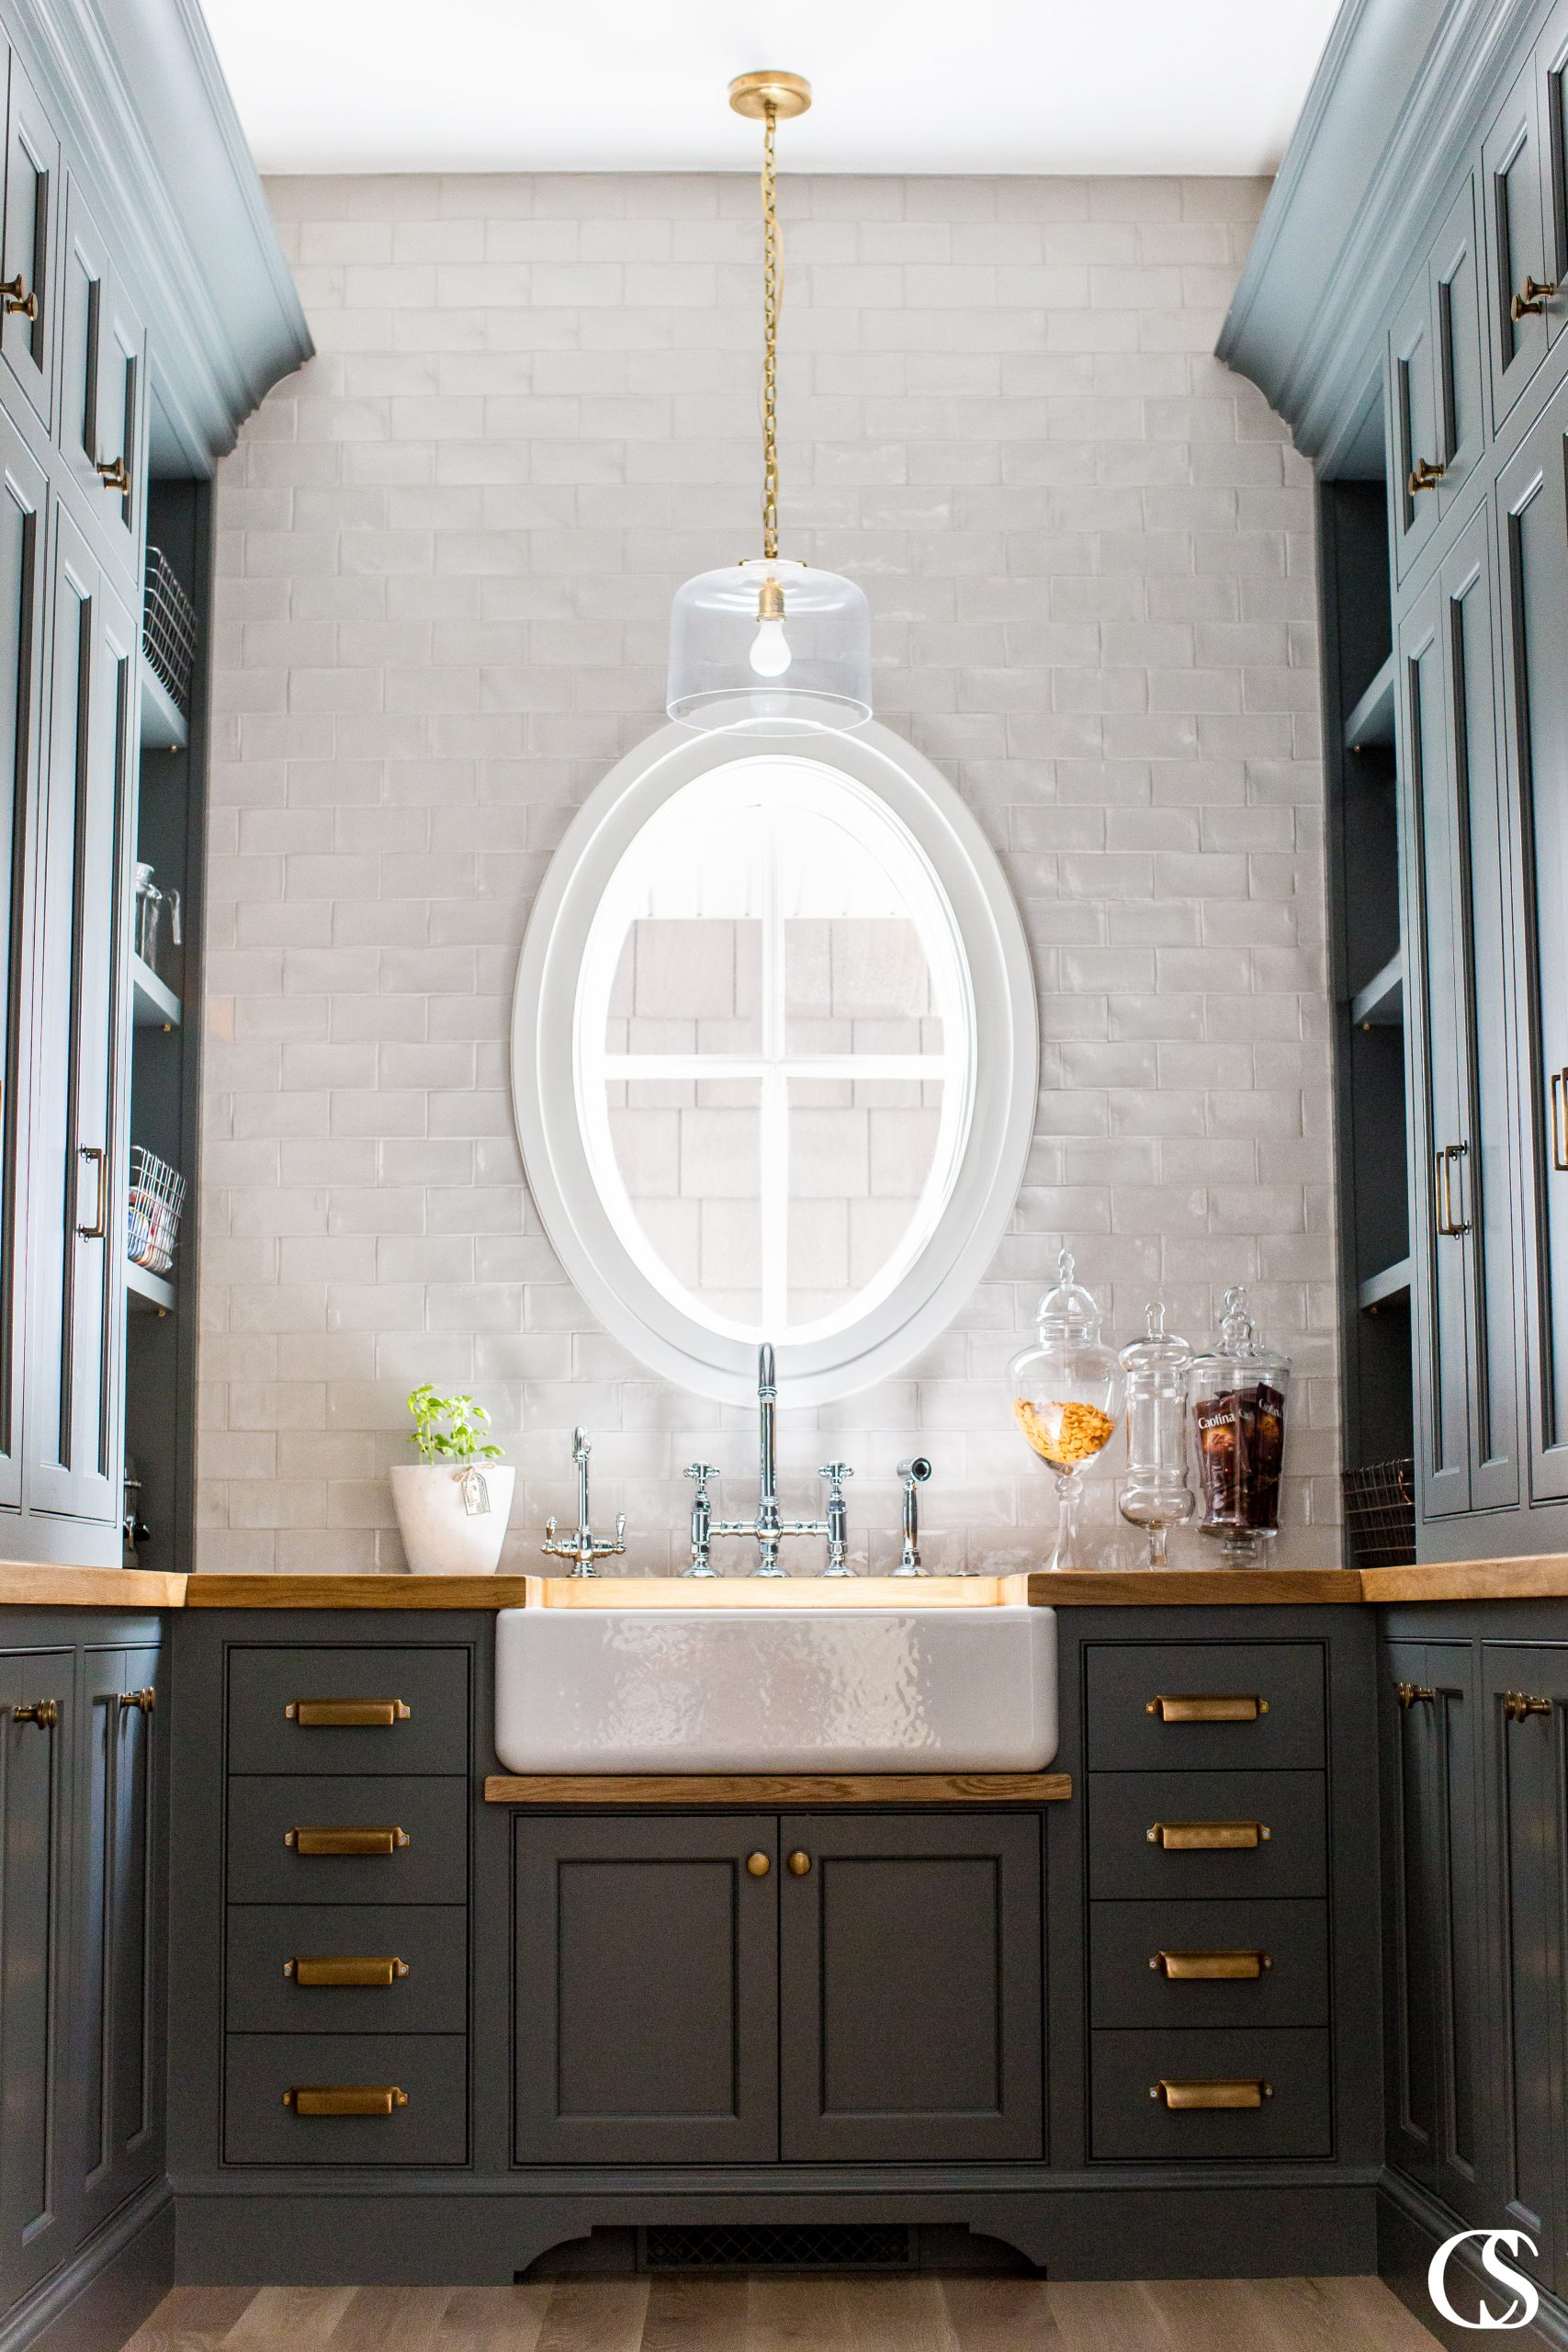 The best kitchen pantry design ideas are ready for anything kitchen prep can throw at them. A great custom pantry needs an array of drawers, cabinets, shelving, and a great farmhouse sink. And why not add some deep paint, just to throw it over the top?